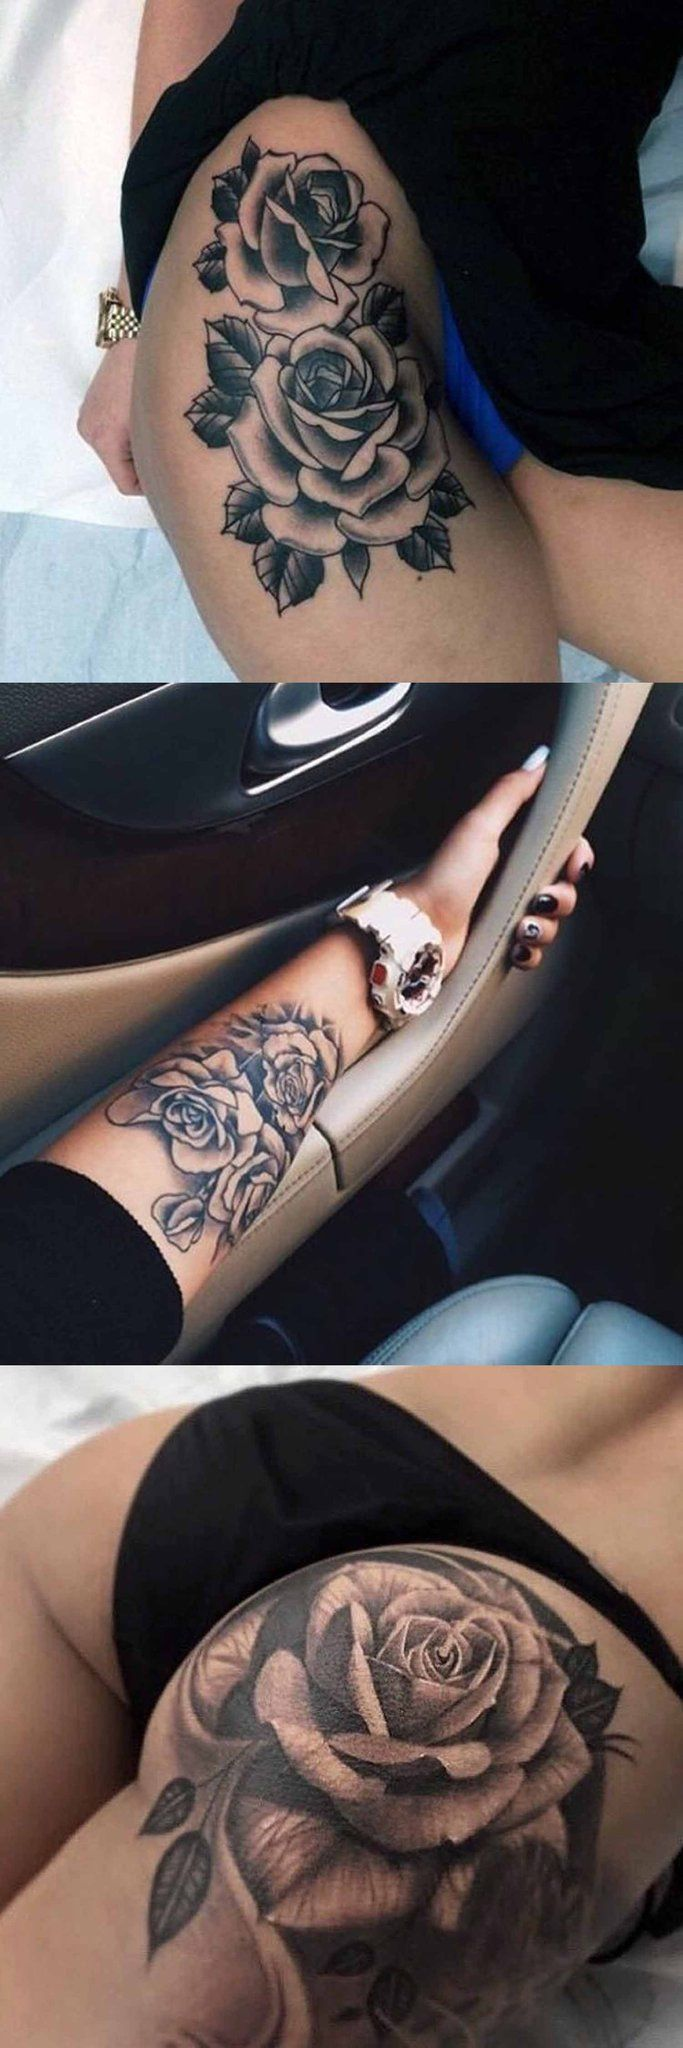 Realistic Black Rose Flower Floral Thigh Leg Arm Wrist Bum Tattoo Ideas for – Gerti Schröttle | Picbilder